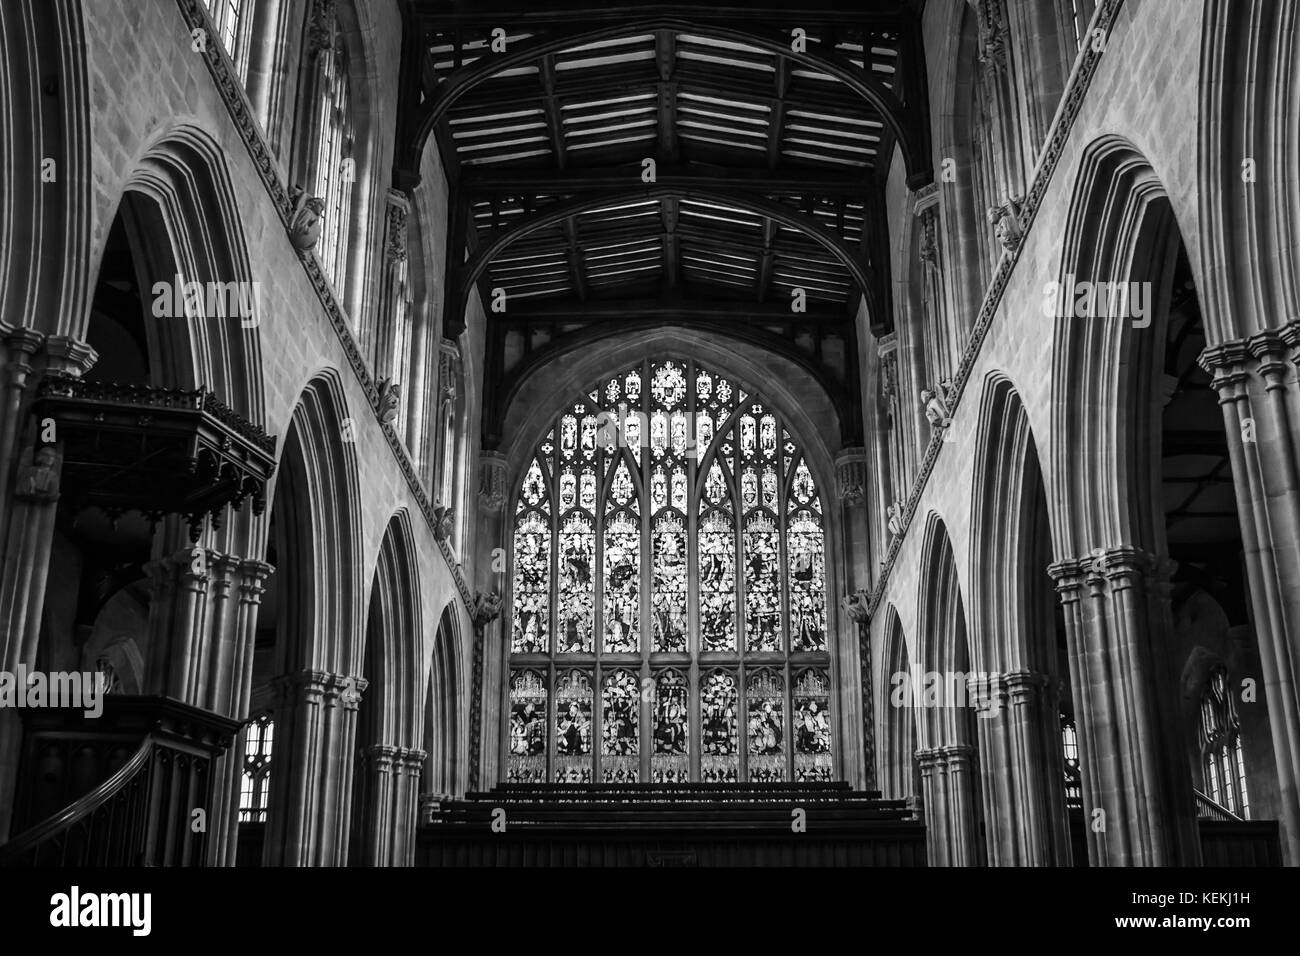 University Church of St Mary the Virgin, Oxford, England - Stock Image